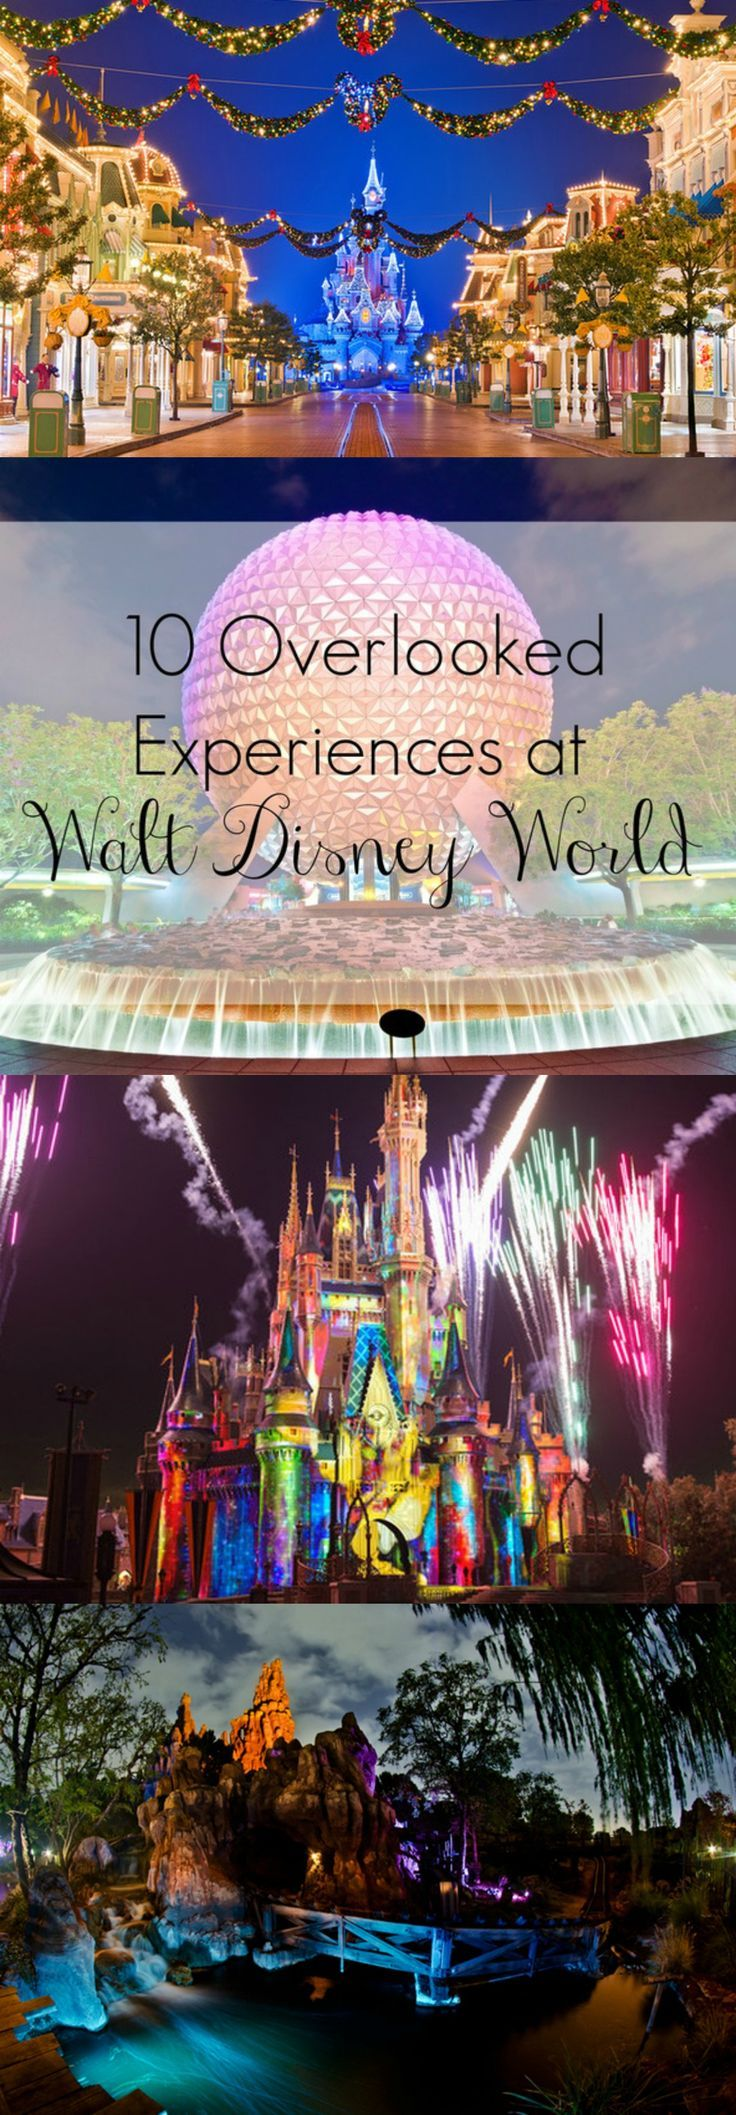 10 overlooked experiences at Walt Disney World, including Celebrate the Magic, Big Thunder Mountain Railroad at night, and L'Artisian Des Glaces!